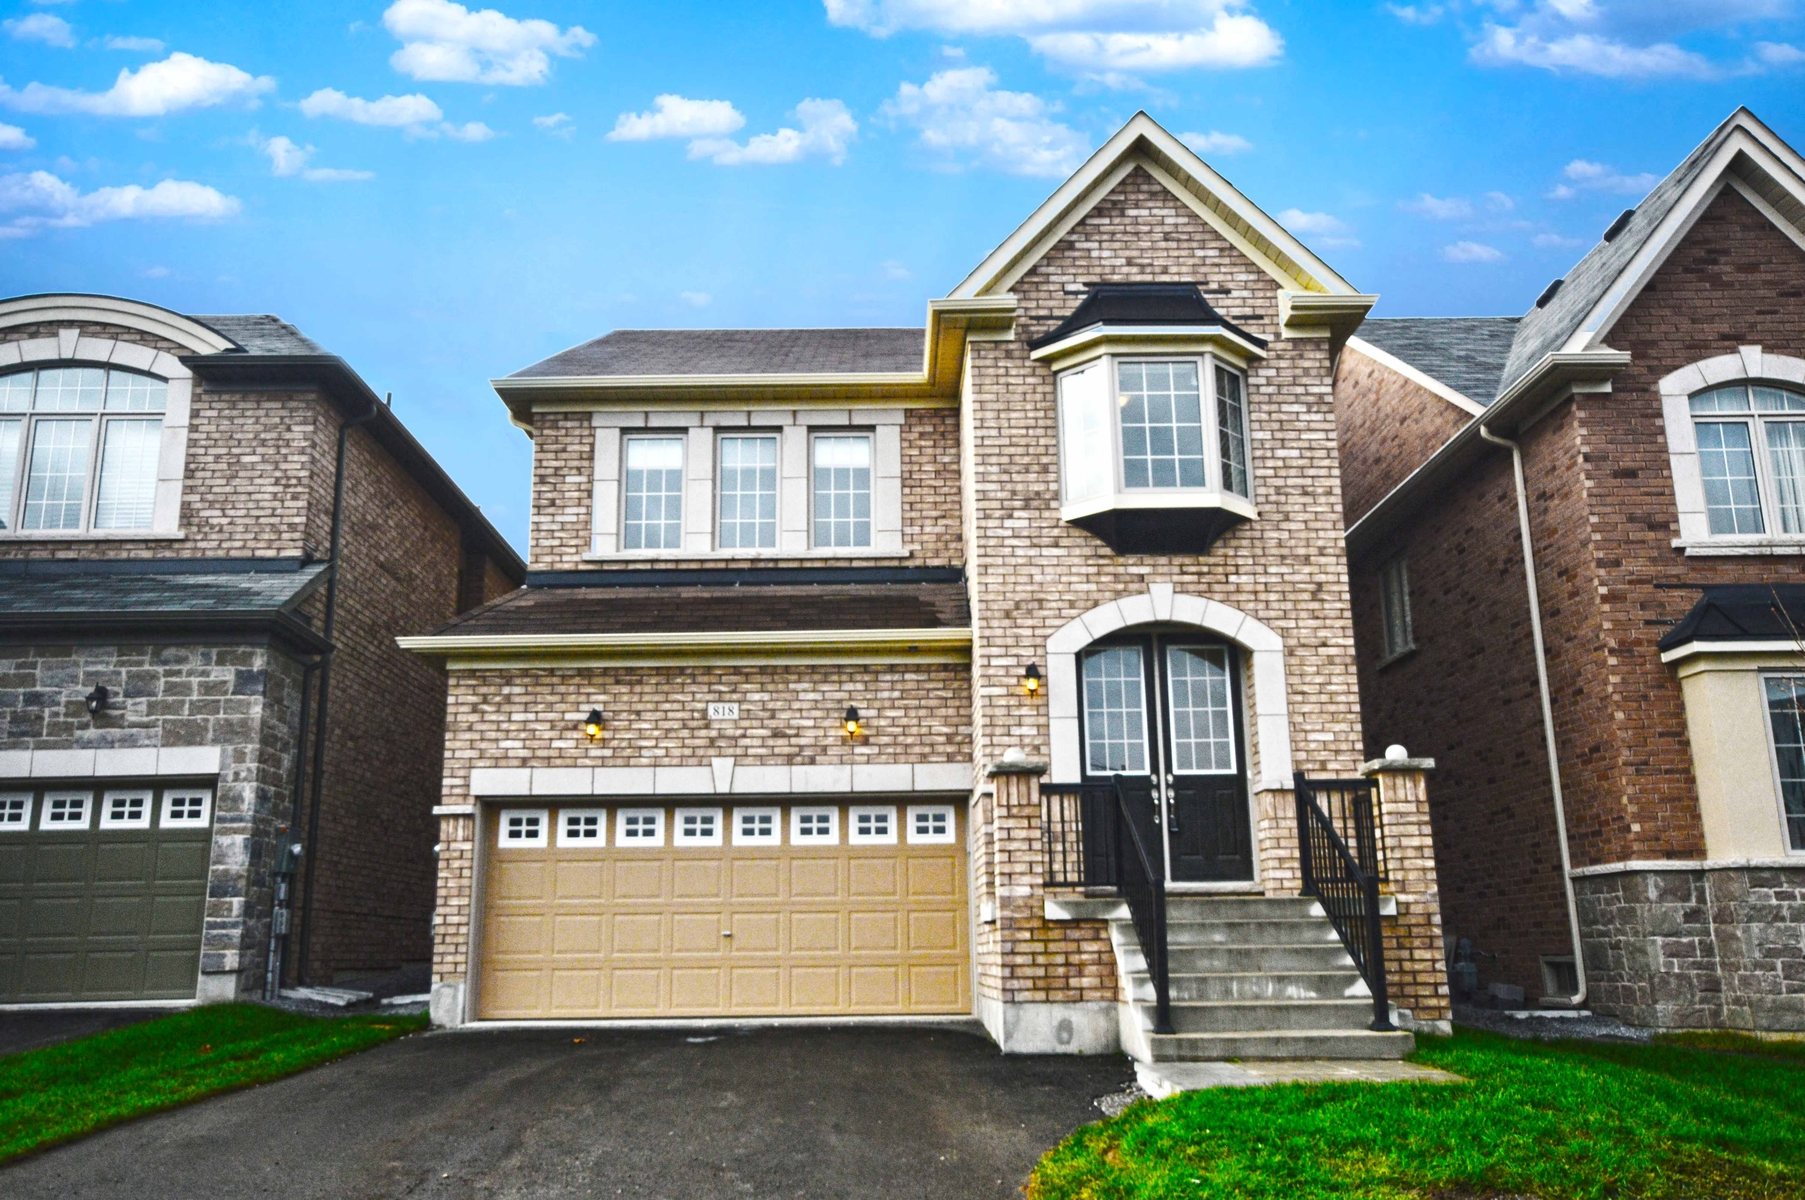 virtualtours/1728/c/818_elvidge_trail_-_fuad_abasov_real_estate__.jpg